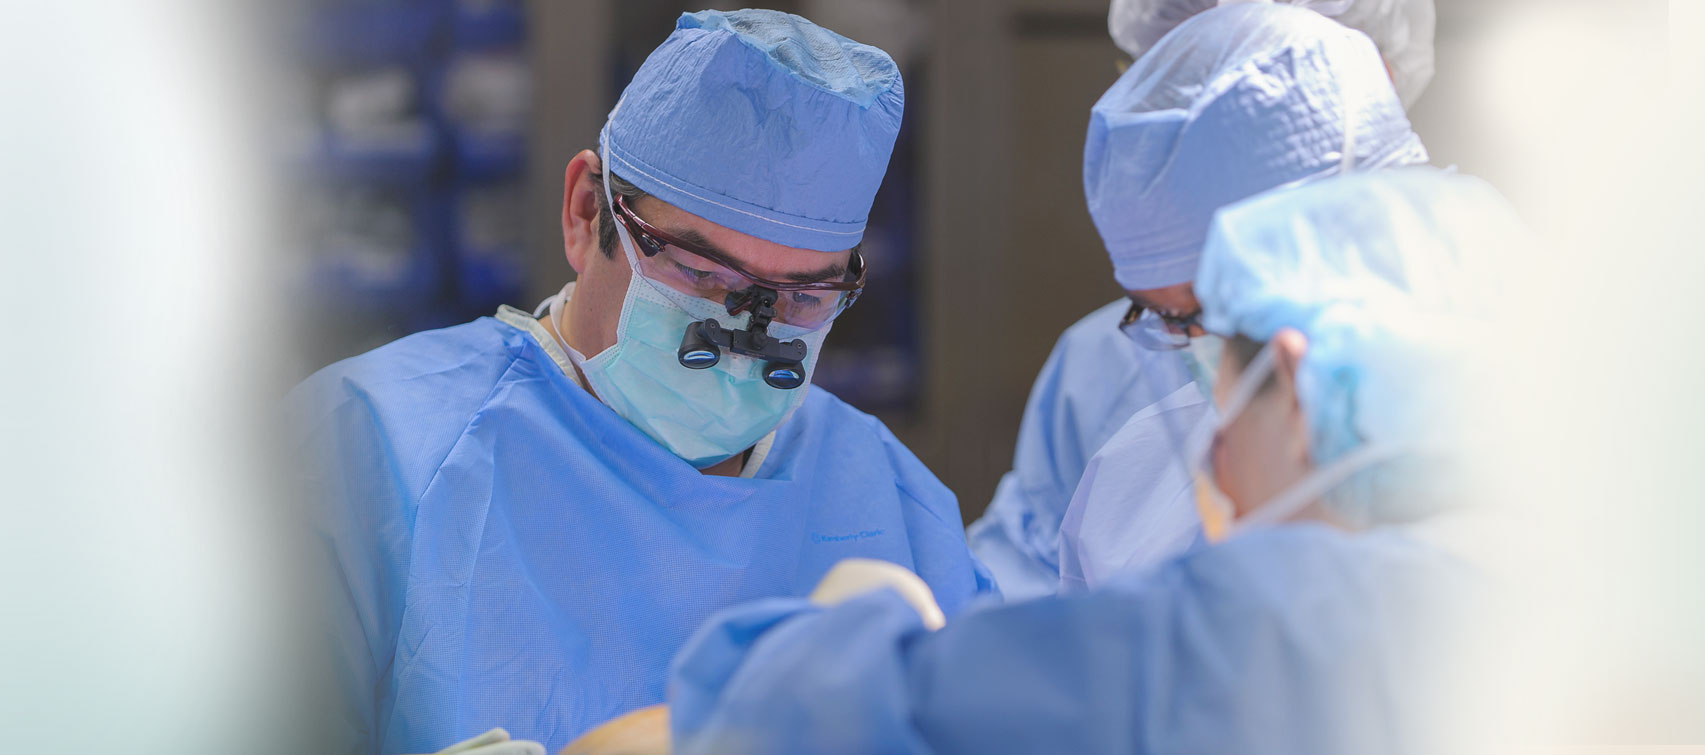 David F. Jimenez, M.D., and Constance M. Barone, M.D., developed a new way of doing pediatric neurosurgery for craniosysostosis. The surgery on infants who have fused skulls once took 8 to 12 hours of surgery; the new surgery takes 45 minutes.